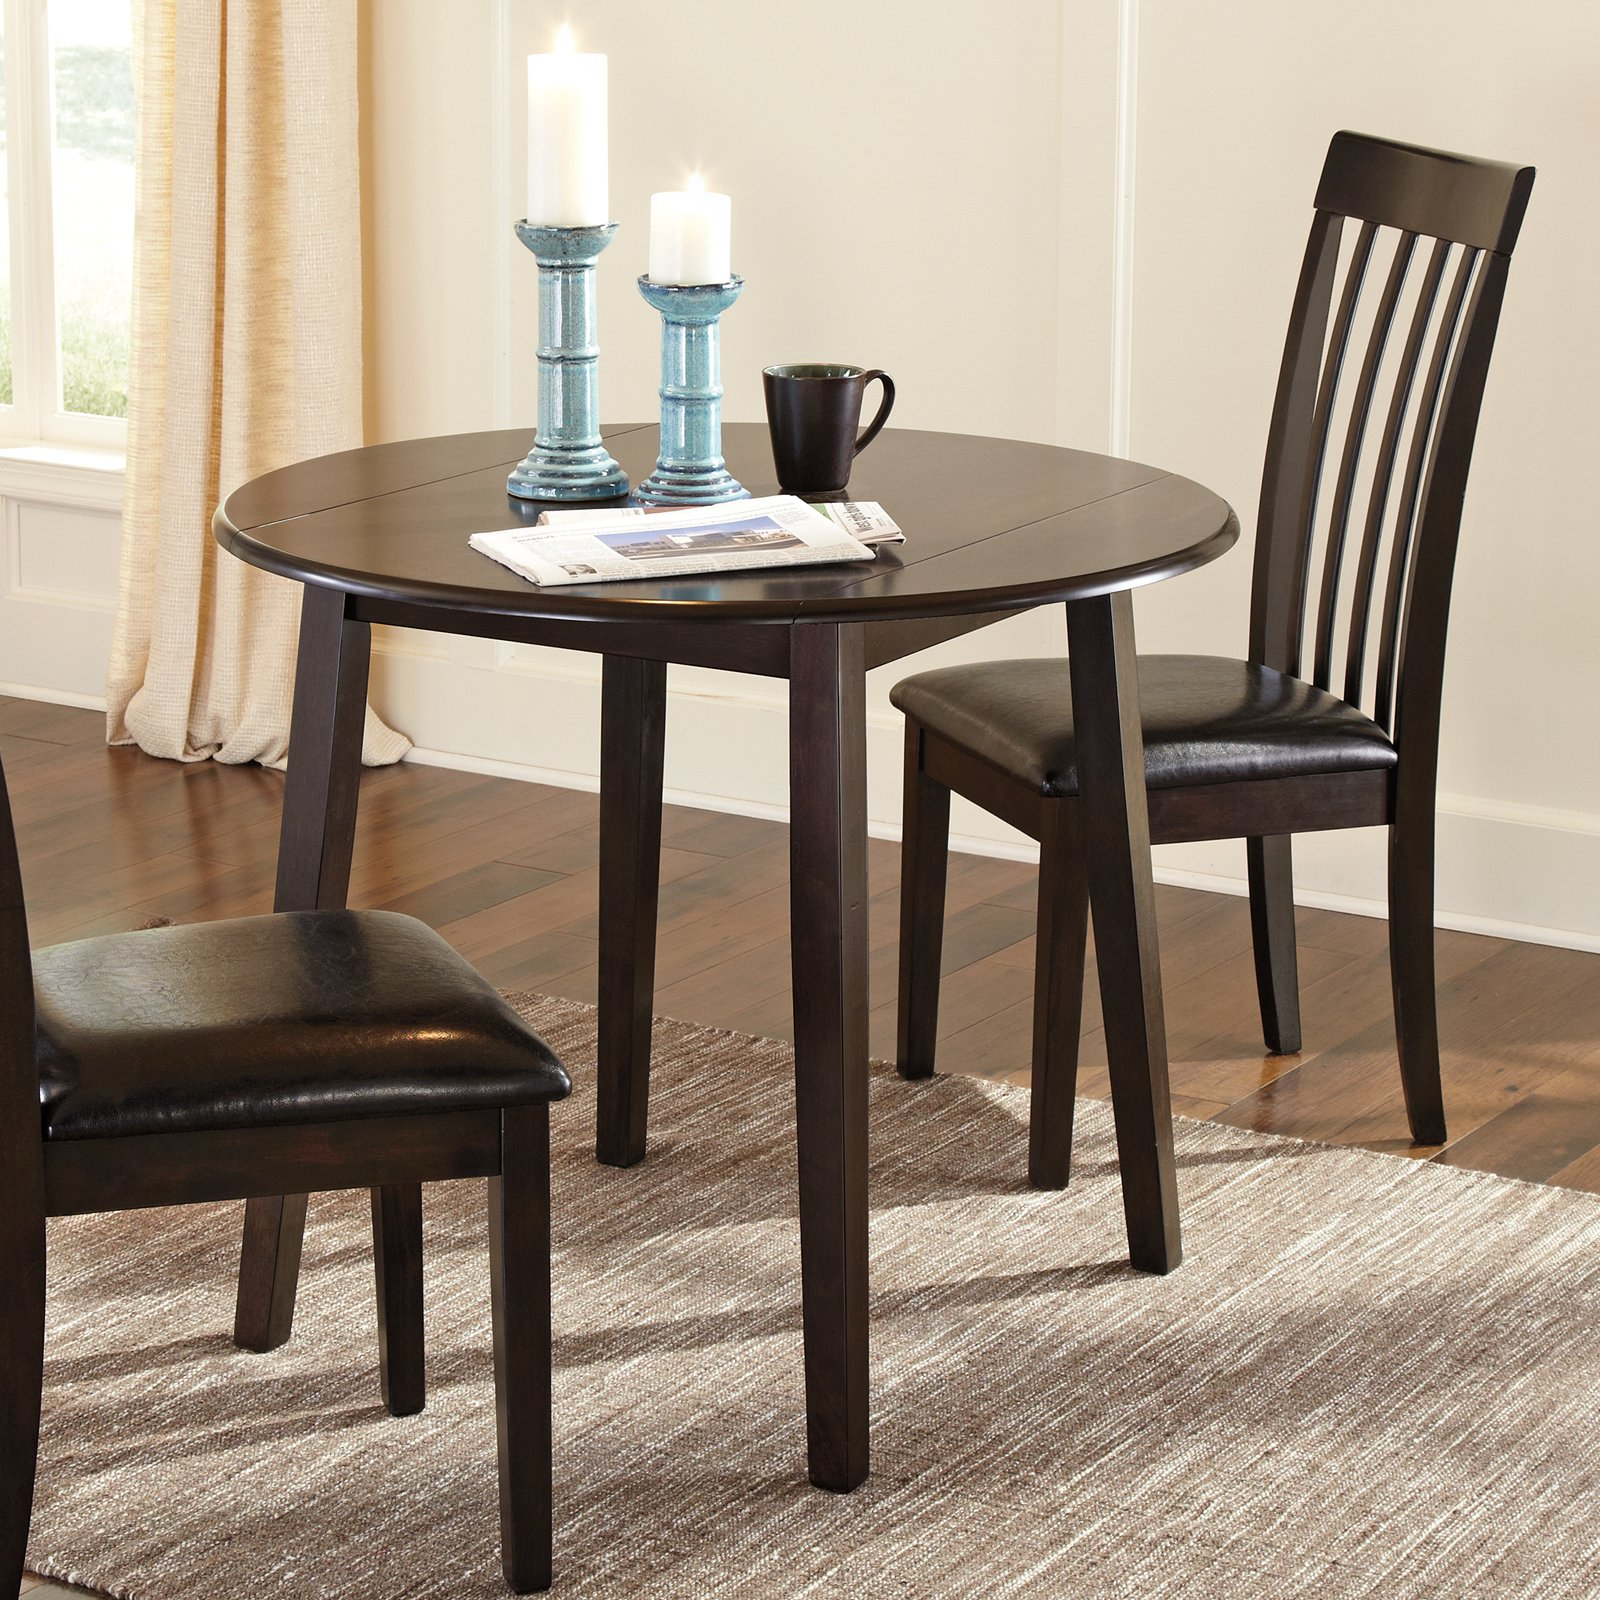 Signature Design By Ashley Hammis Round Dining Table Walmartcom